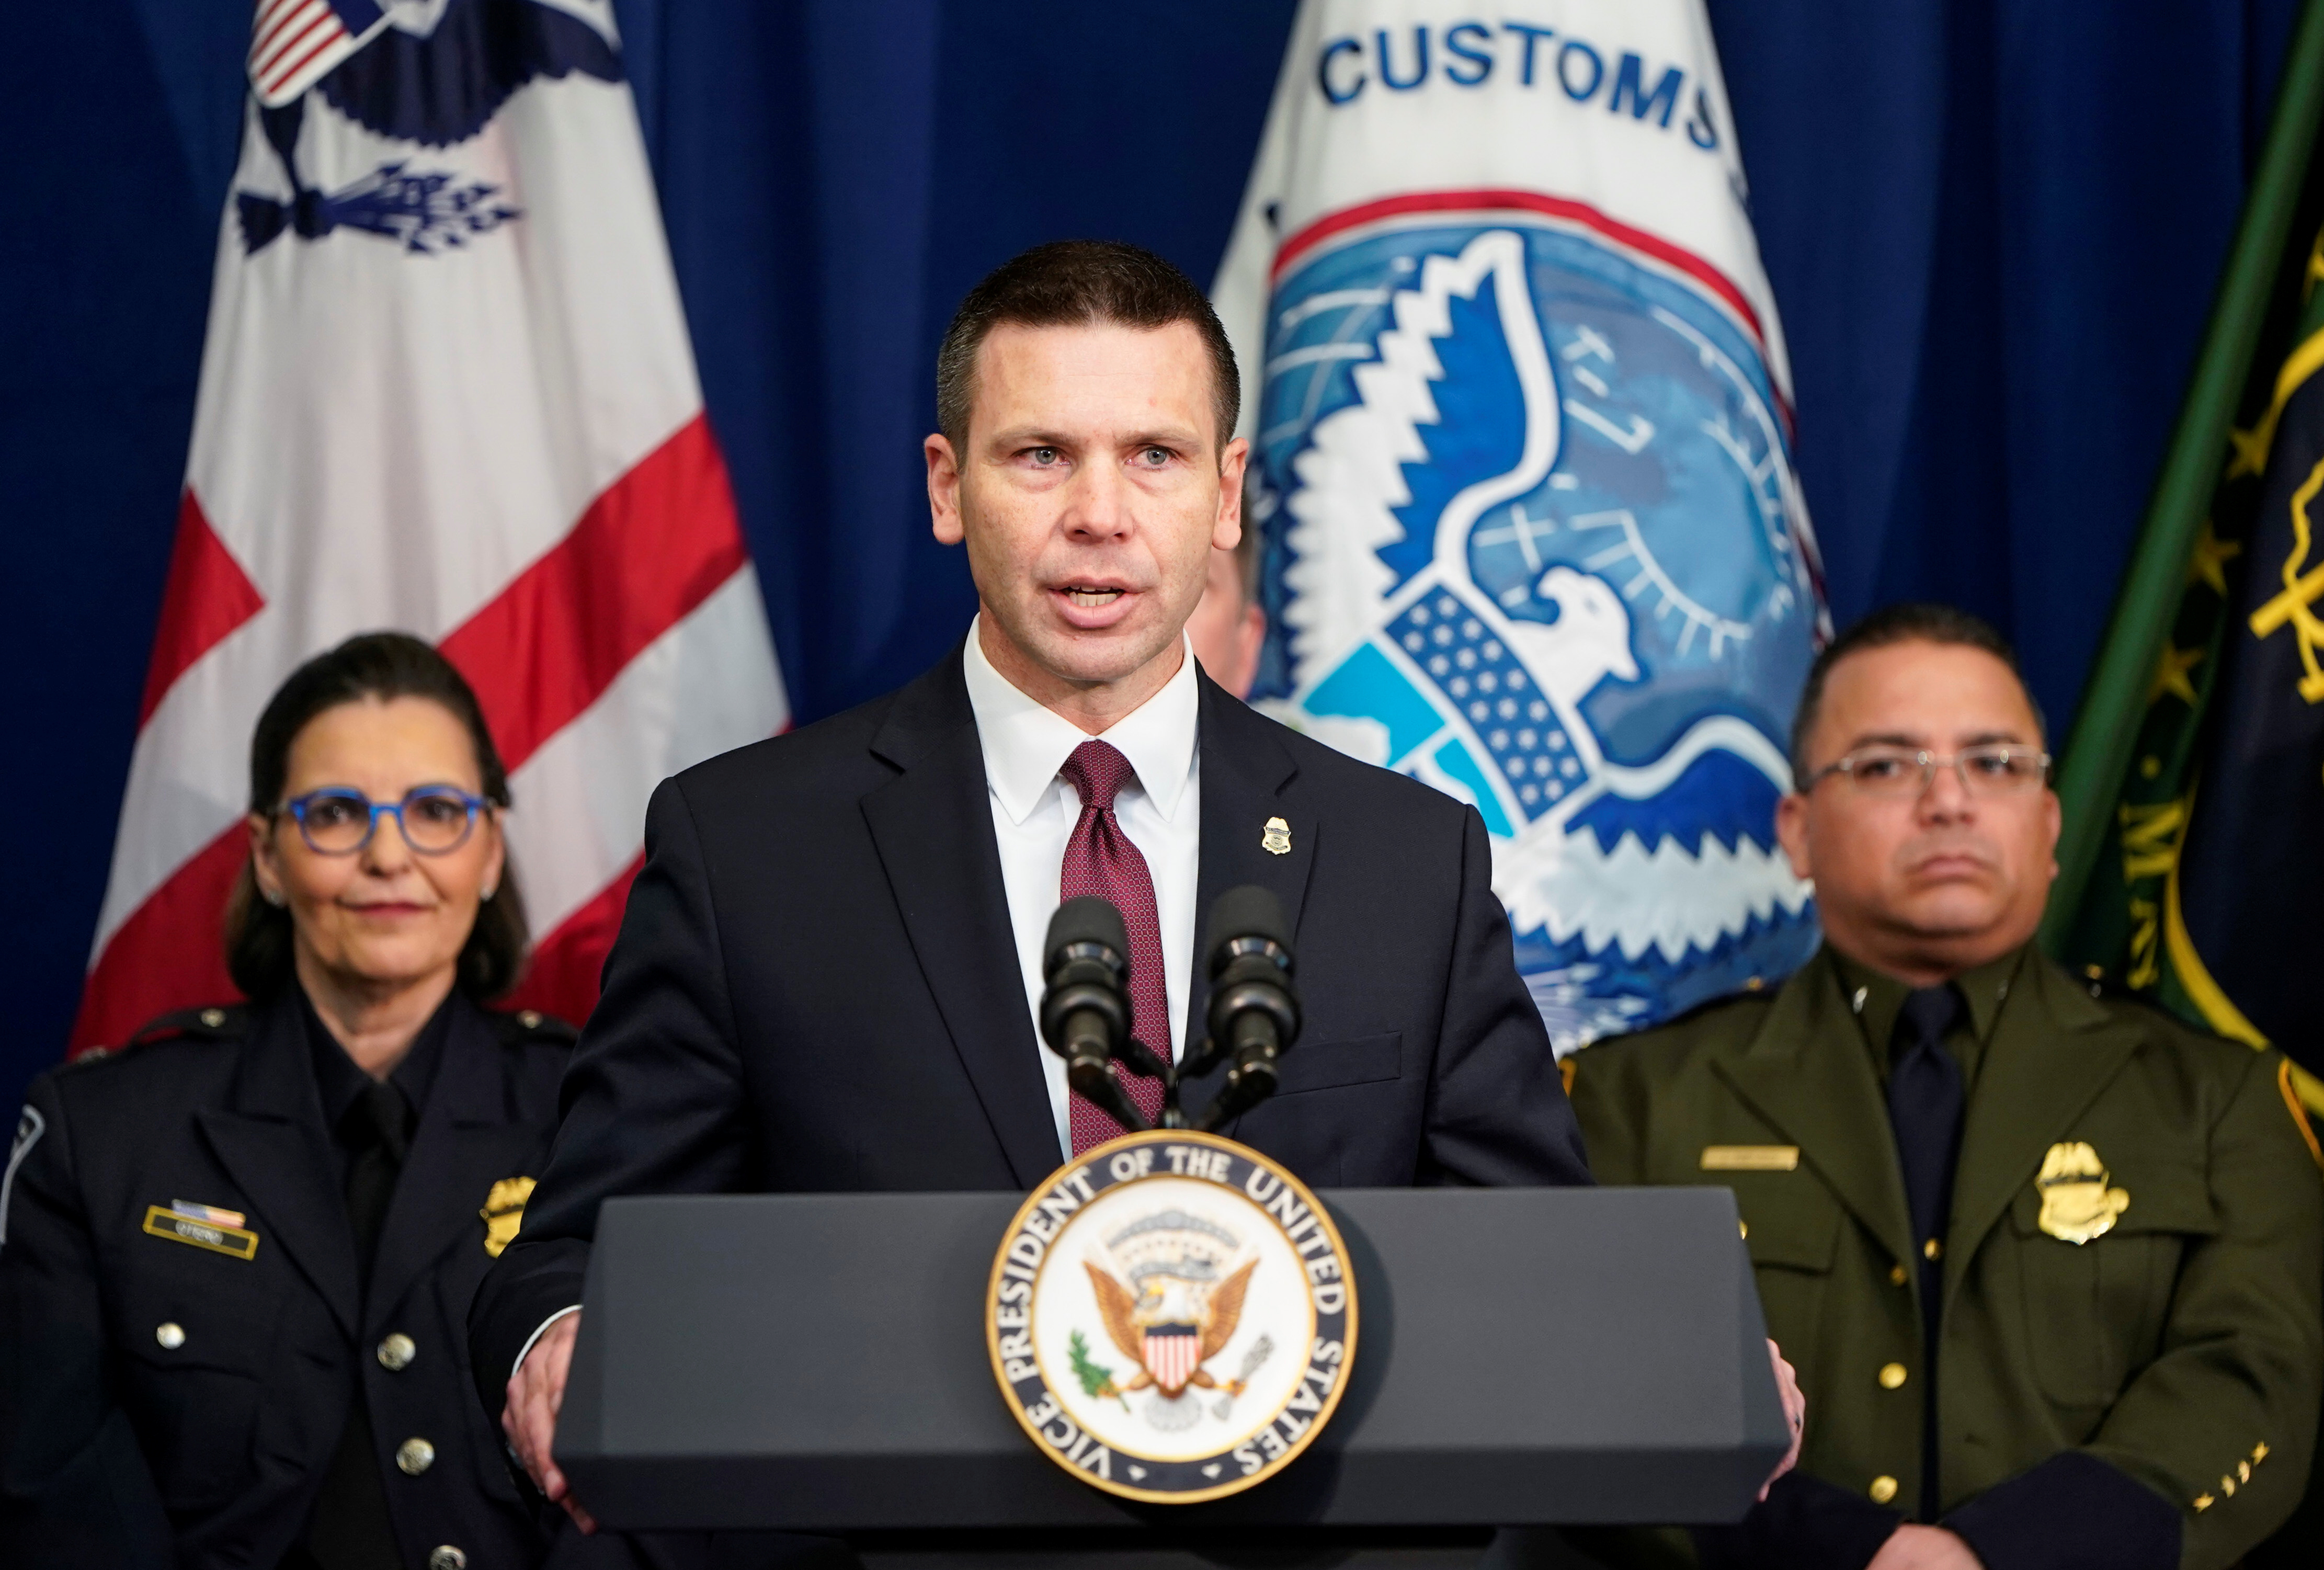 U.S. Customs and Border Protection Commissioner Kevin K. McAleenan speaks at the U.S. Customs and Border Protection Advanced Training Facility in Harpers Ferry, West Virginia